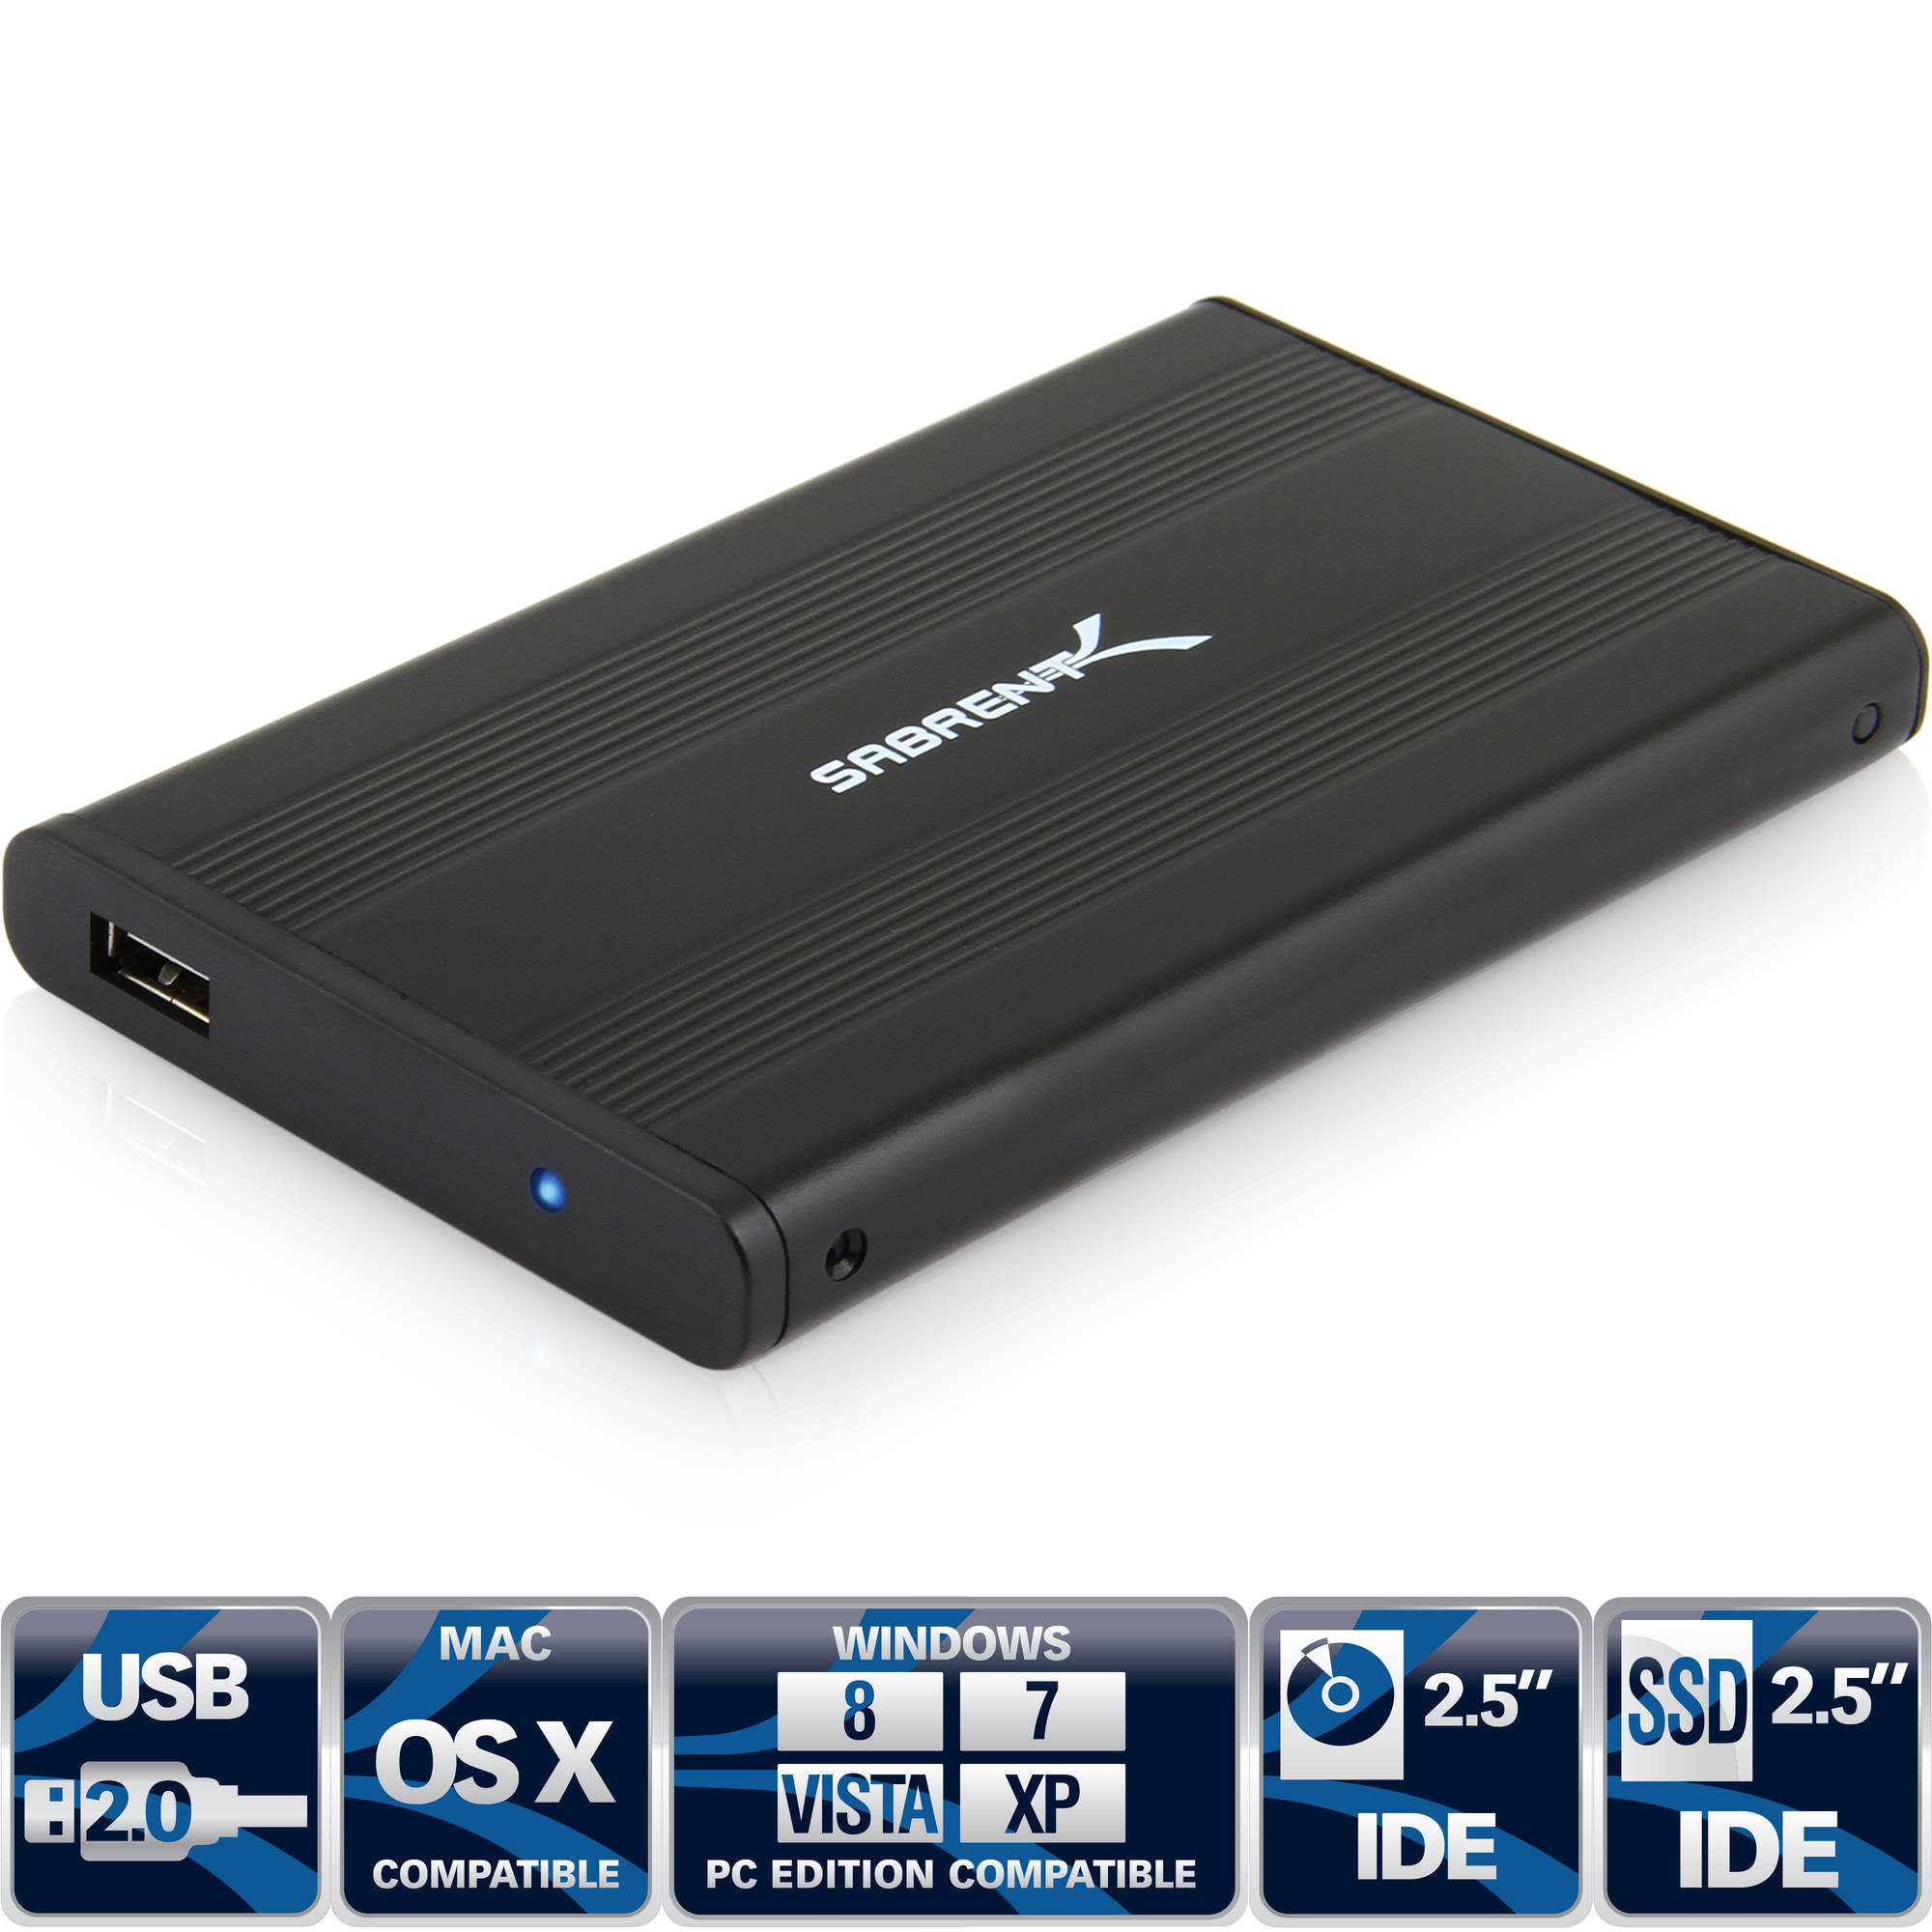 Sabrent - USB 2.0 Super Slim 2.5 Inch Aluminum Hard Drive Enclosure, Black